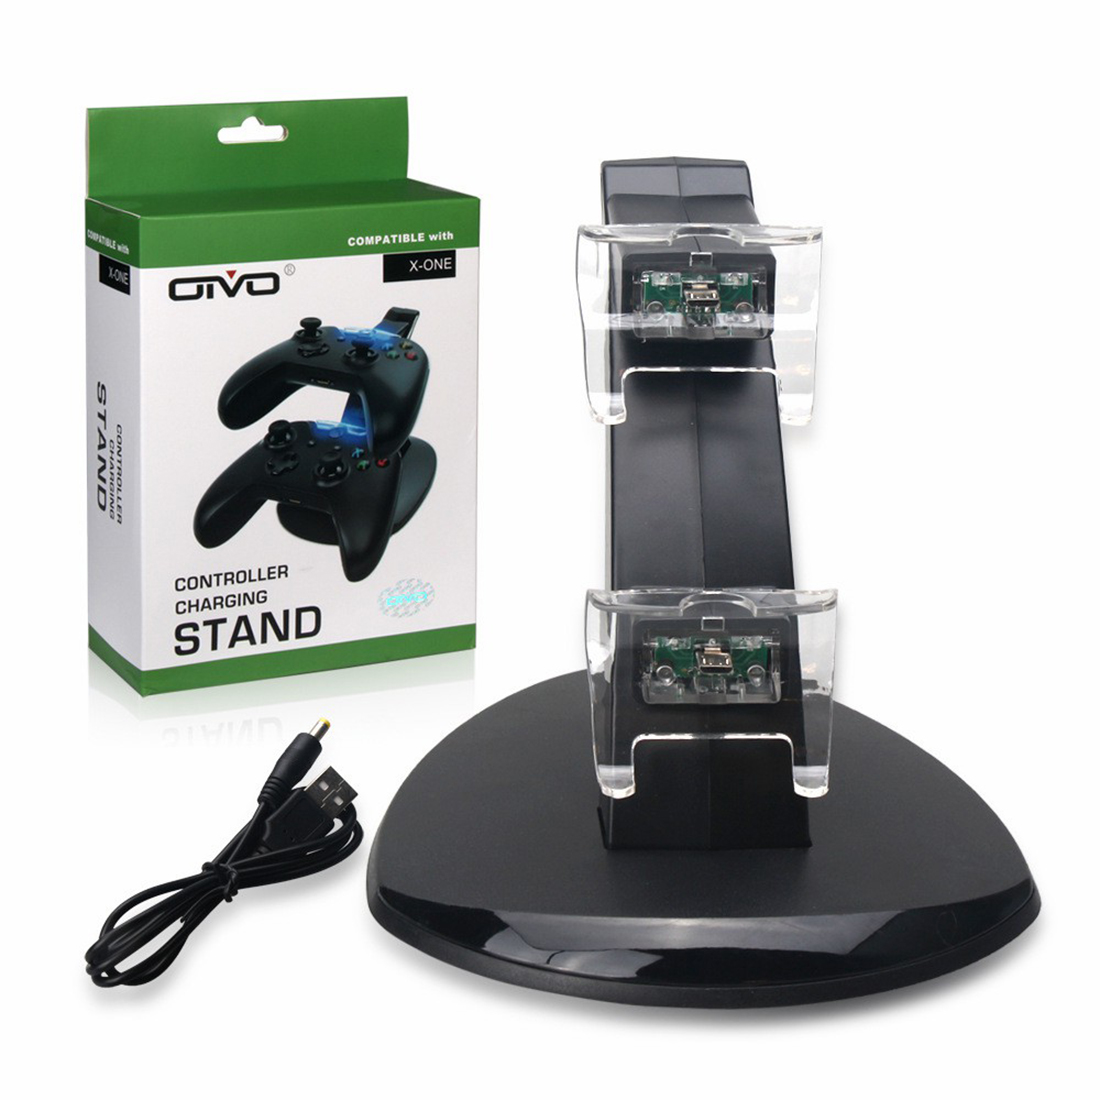 Charging Stand for XBOX One Wireless Controller